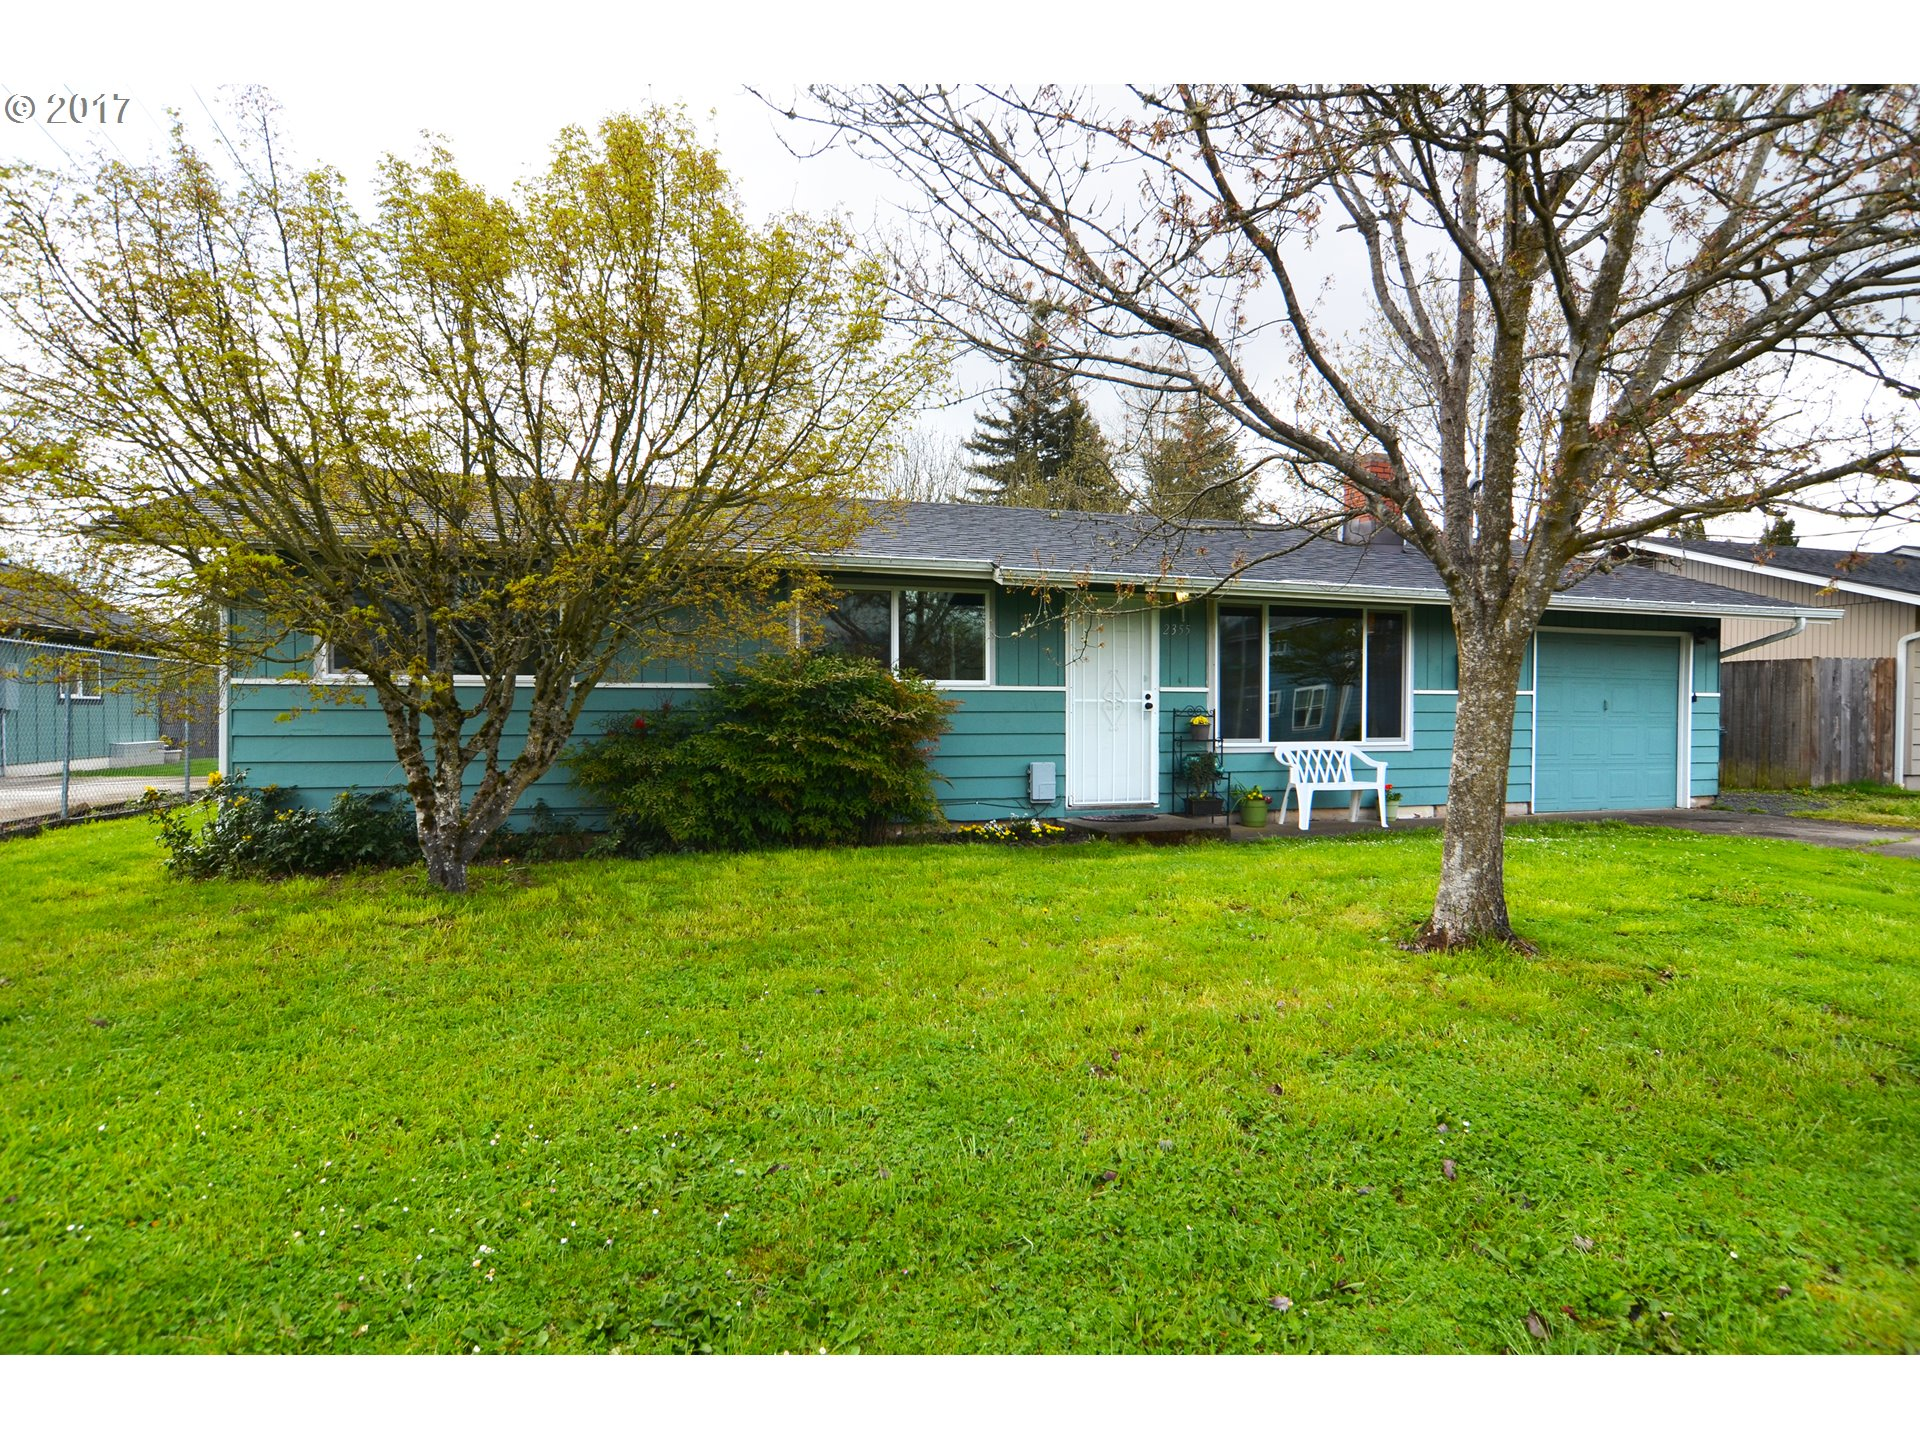 2355 COMPTON ST, Eugene, OR 97404